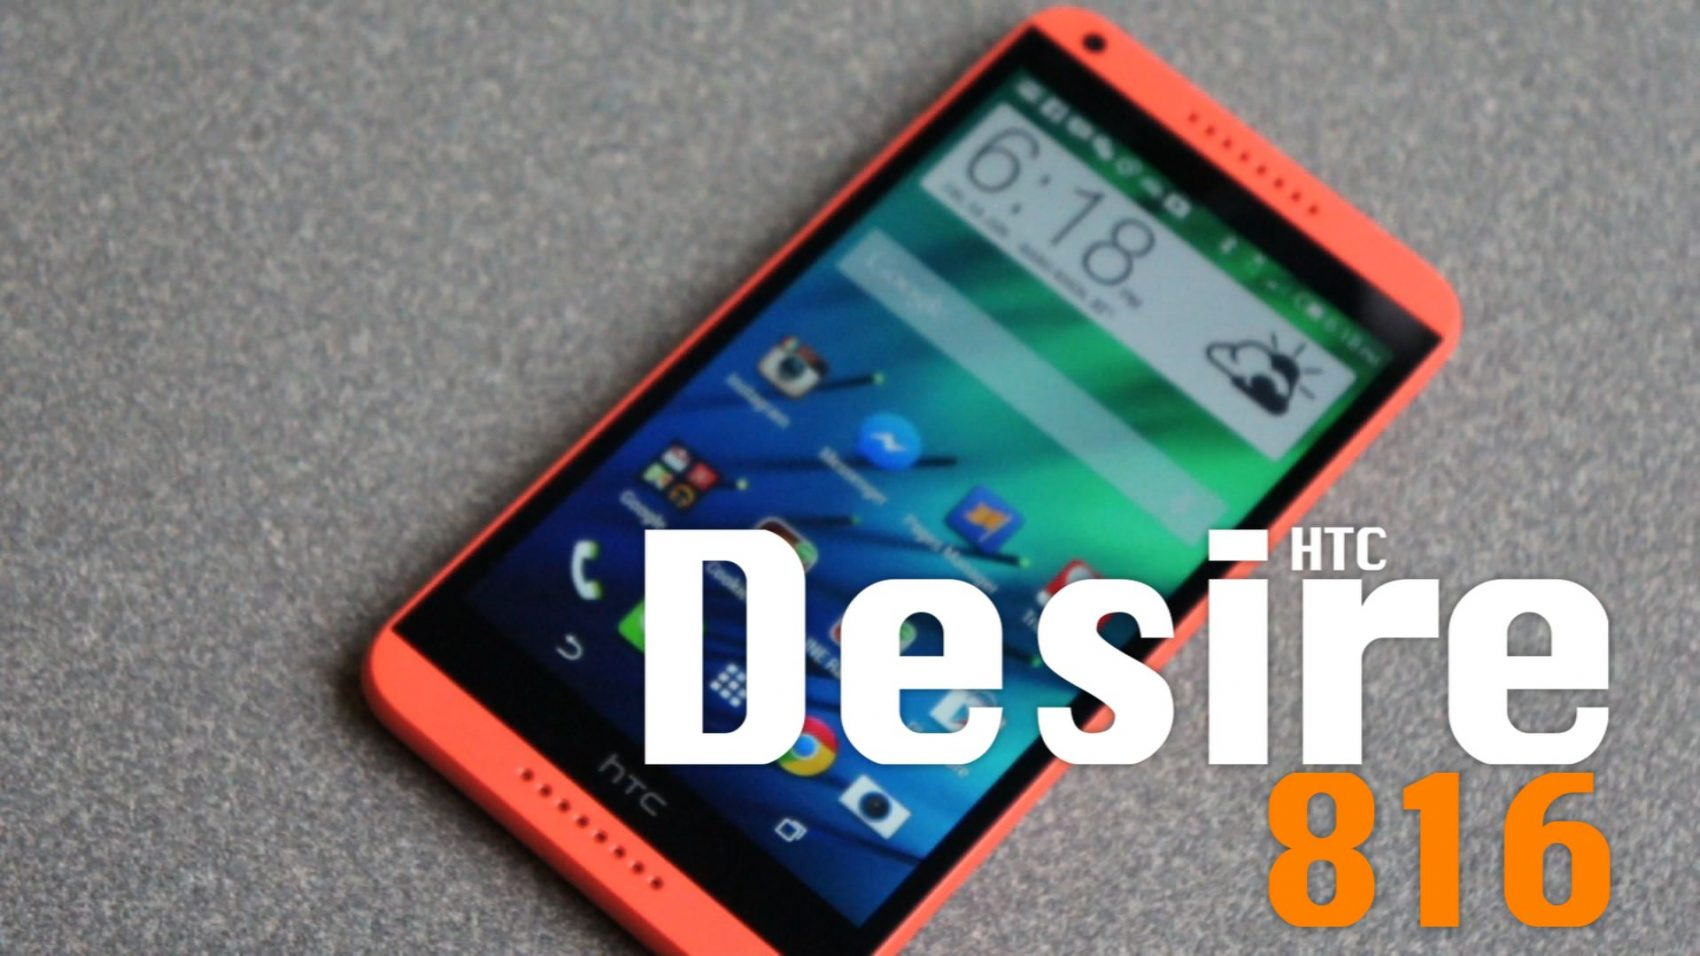 Power ON #080 : HTC Desire 816